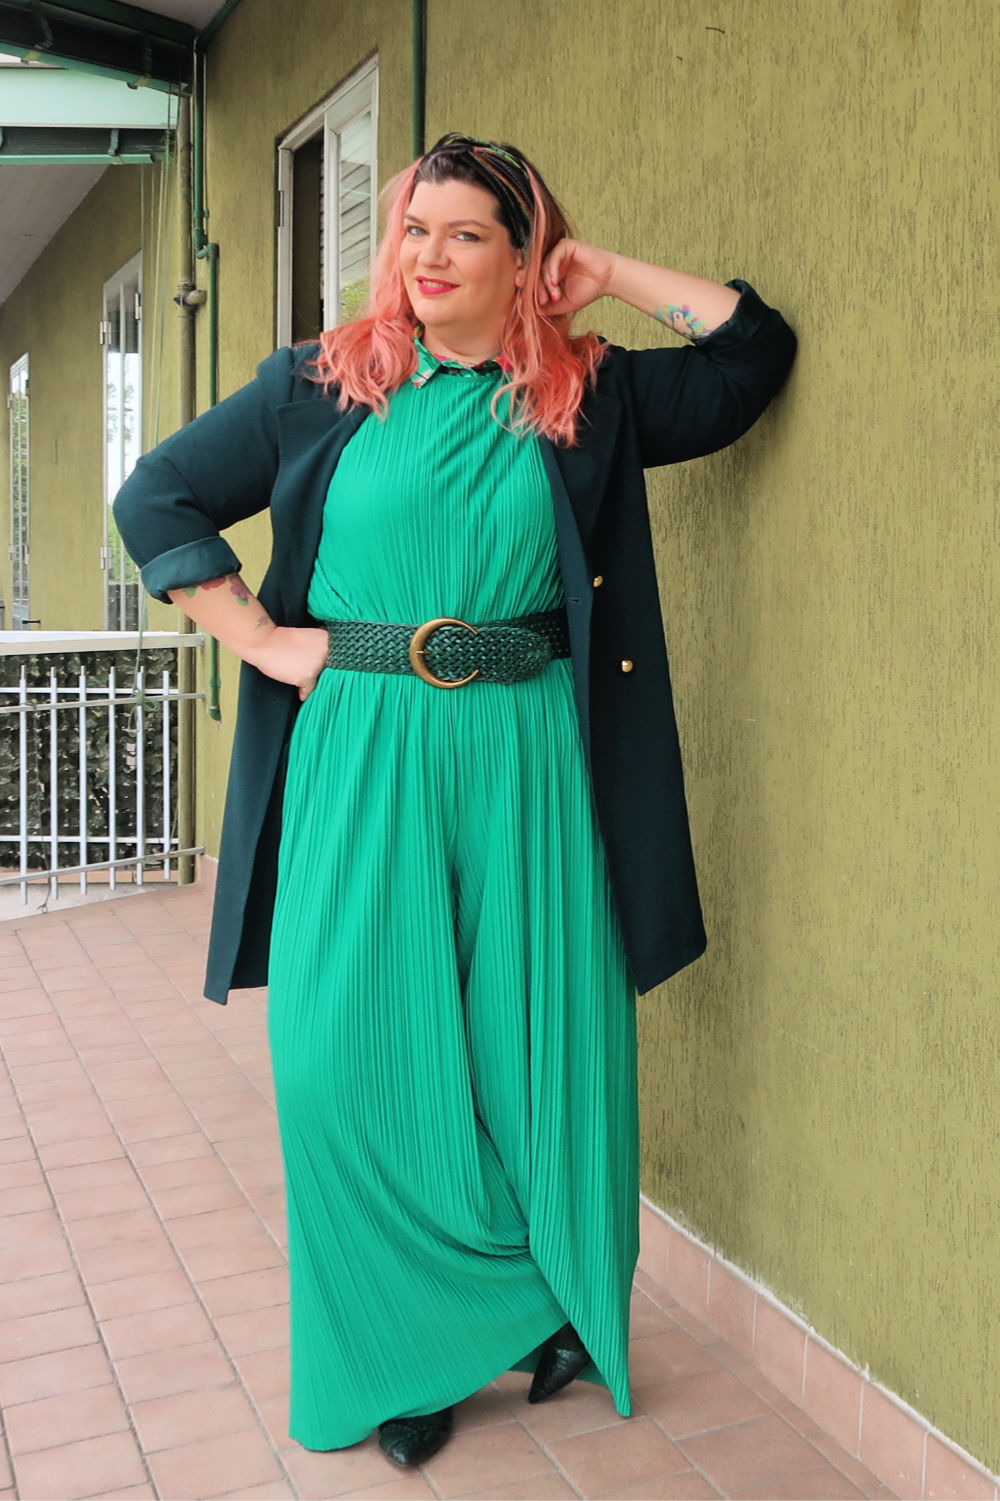 Verde, outfit plus size, curvycolorchallenge , come indossarlo (2)